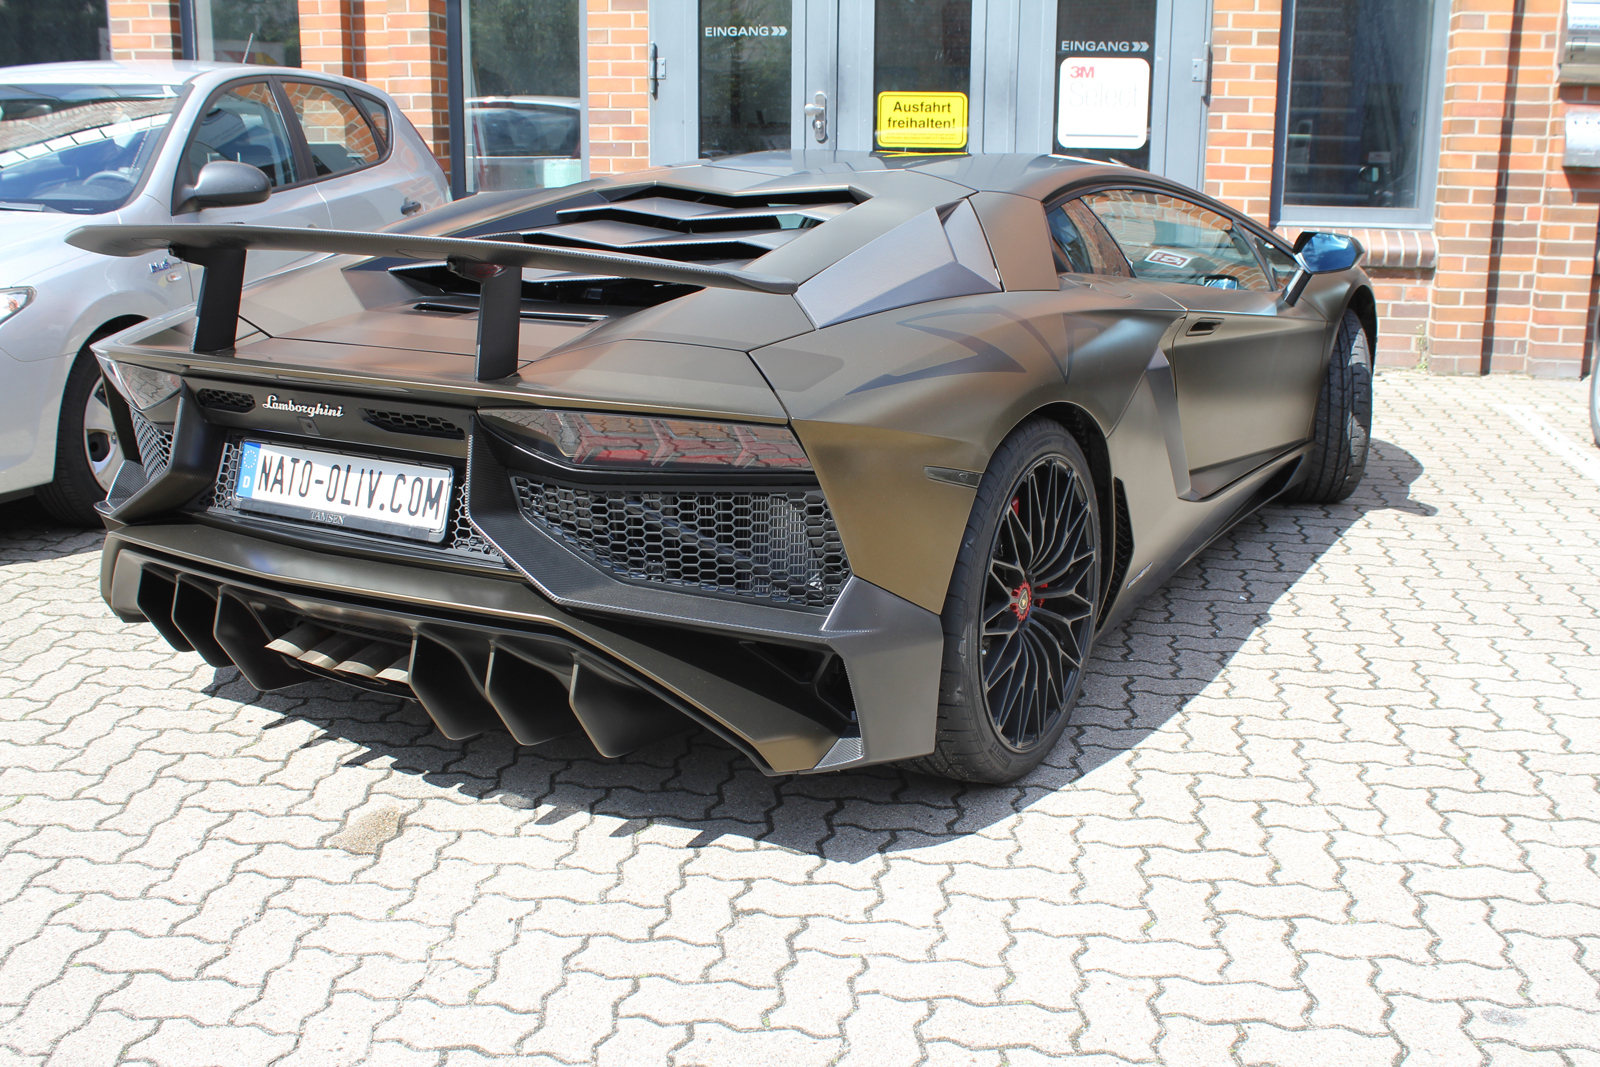 LAMBORGHINI_AVENTADOR_SV_CAR-WRAPPING_BOND_GOLD_04